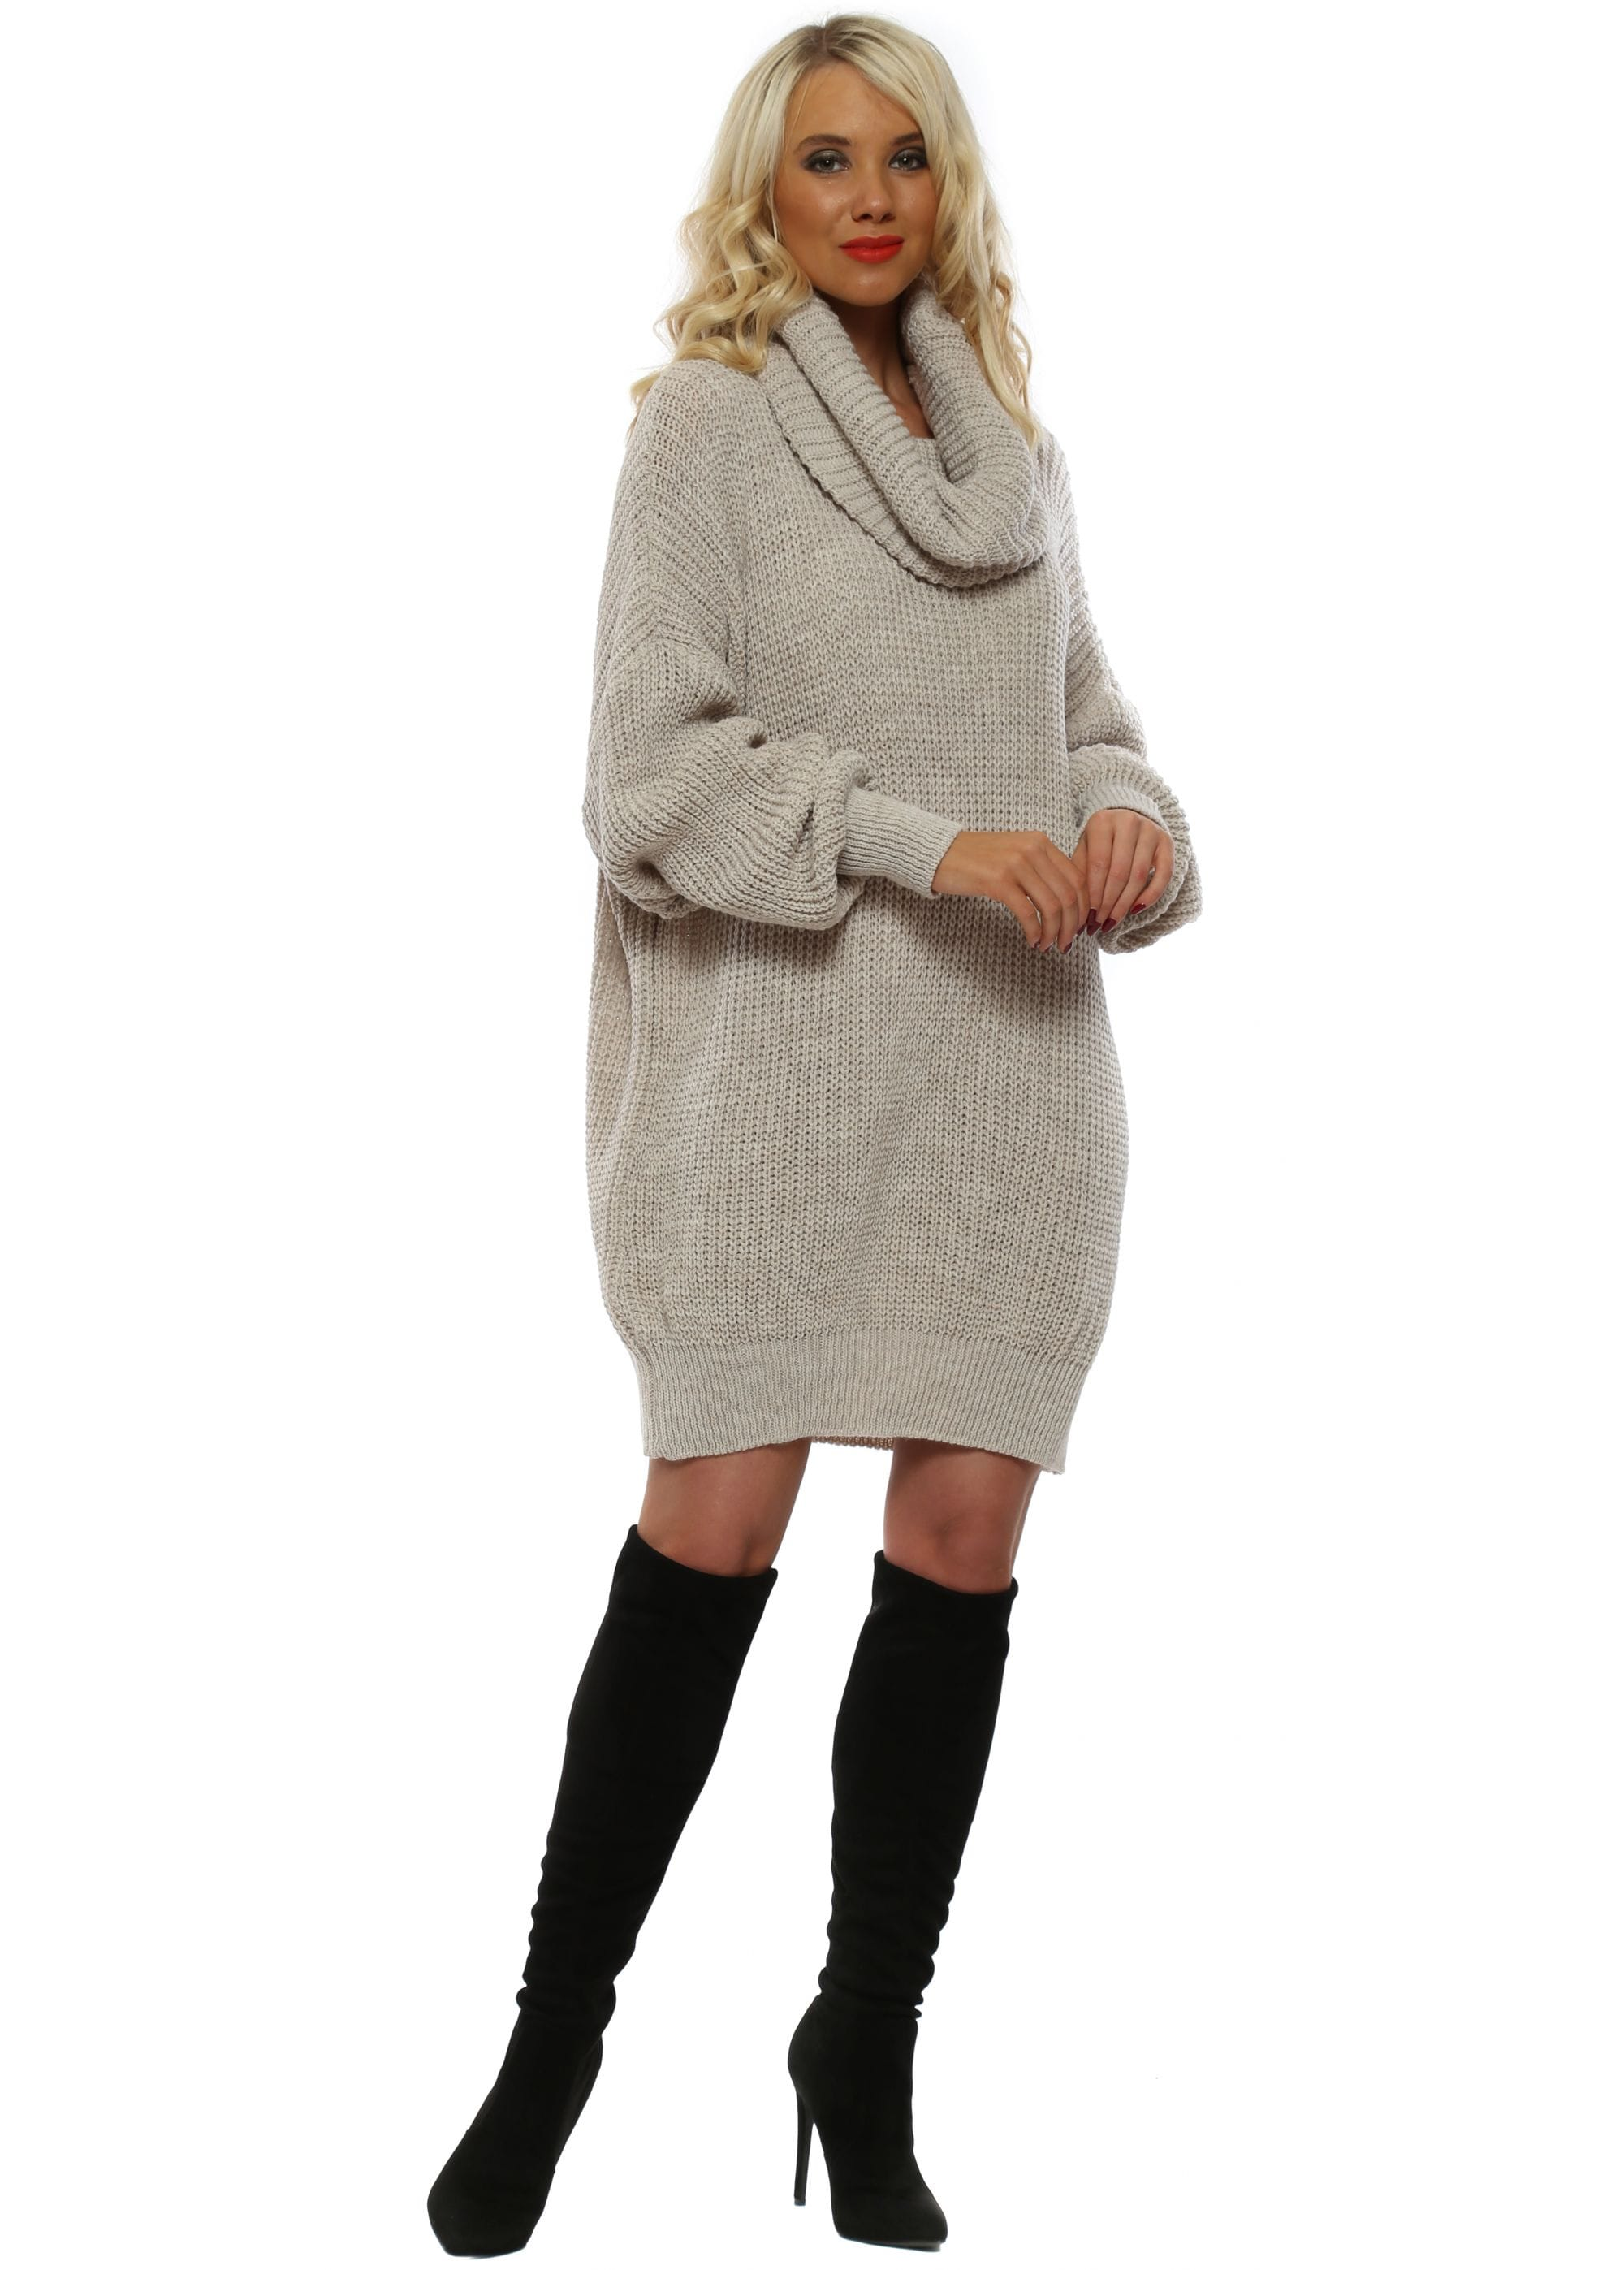 db925e35fa8 Made In Italy Beige Oversized Cowl Neck Jumper Dress